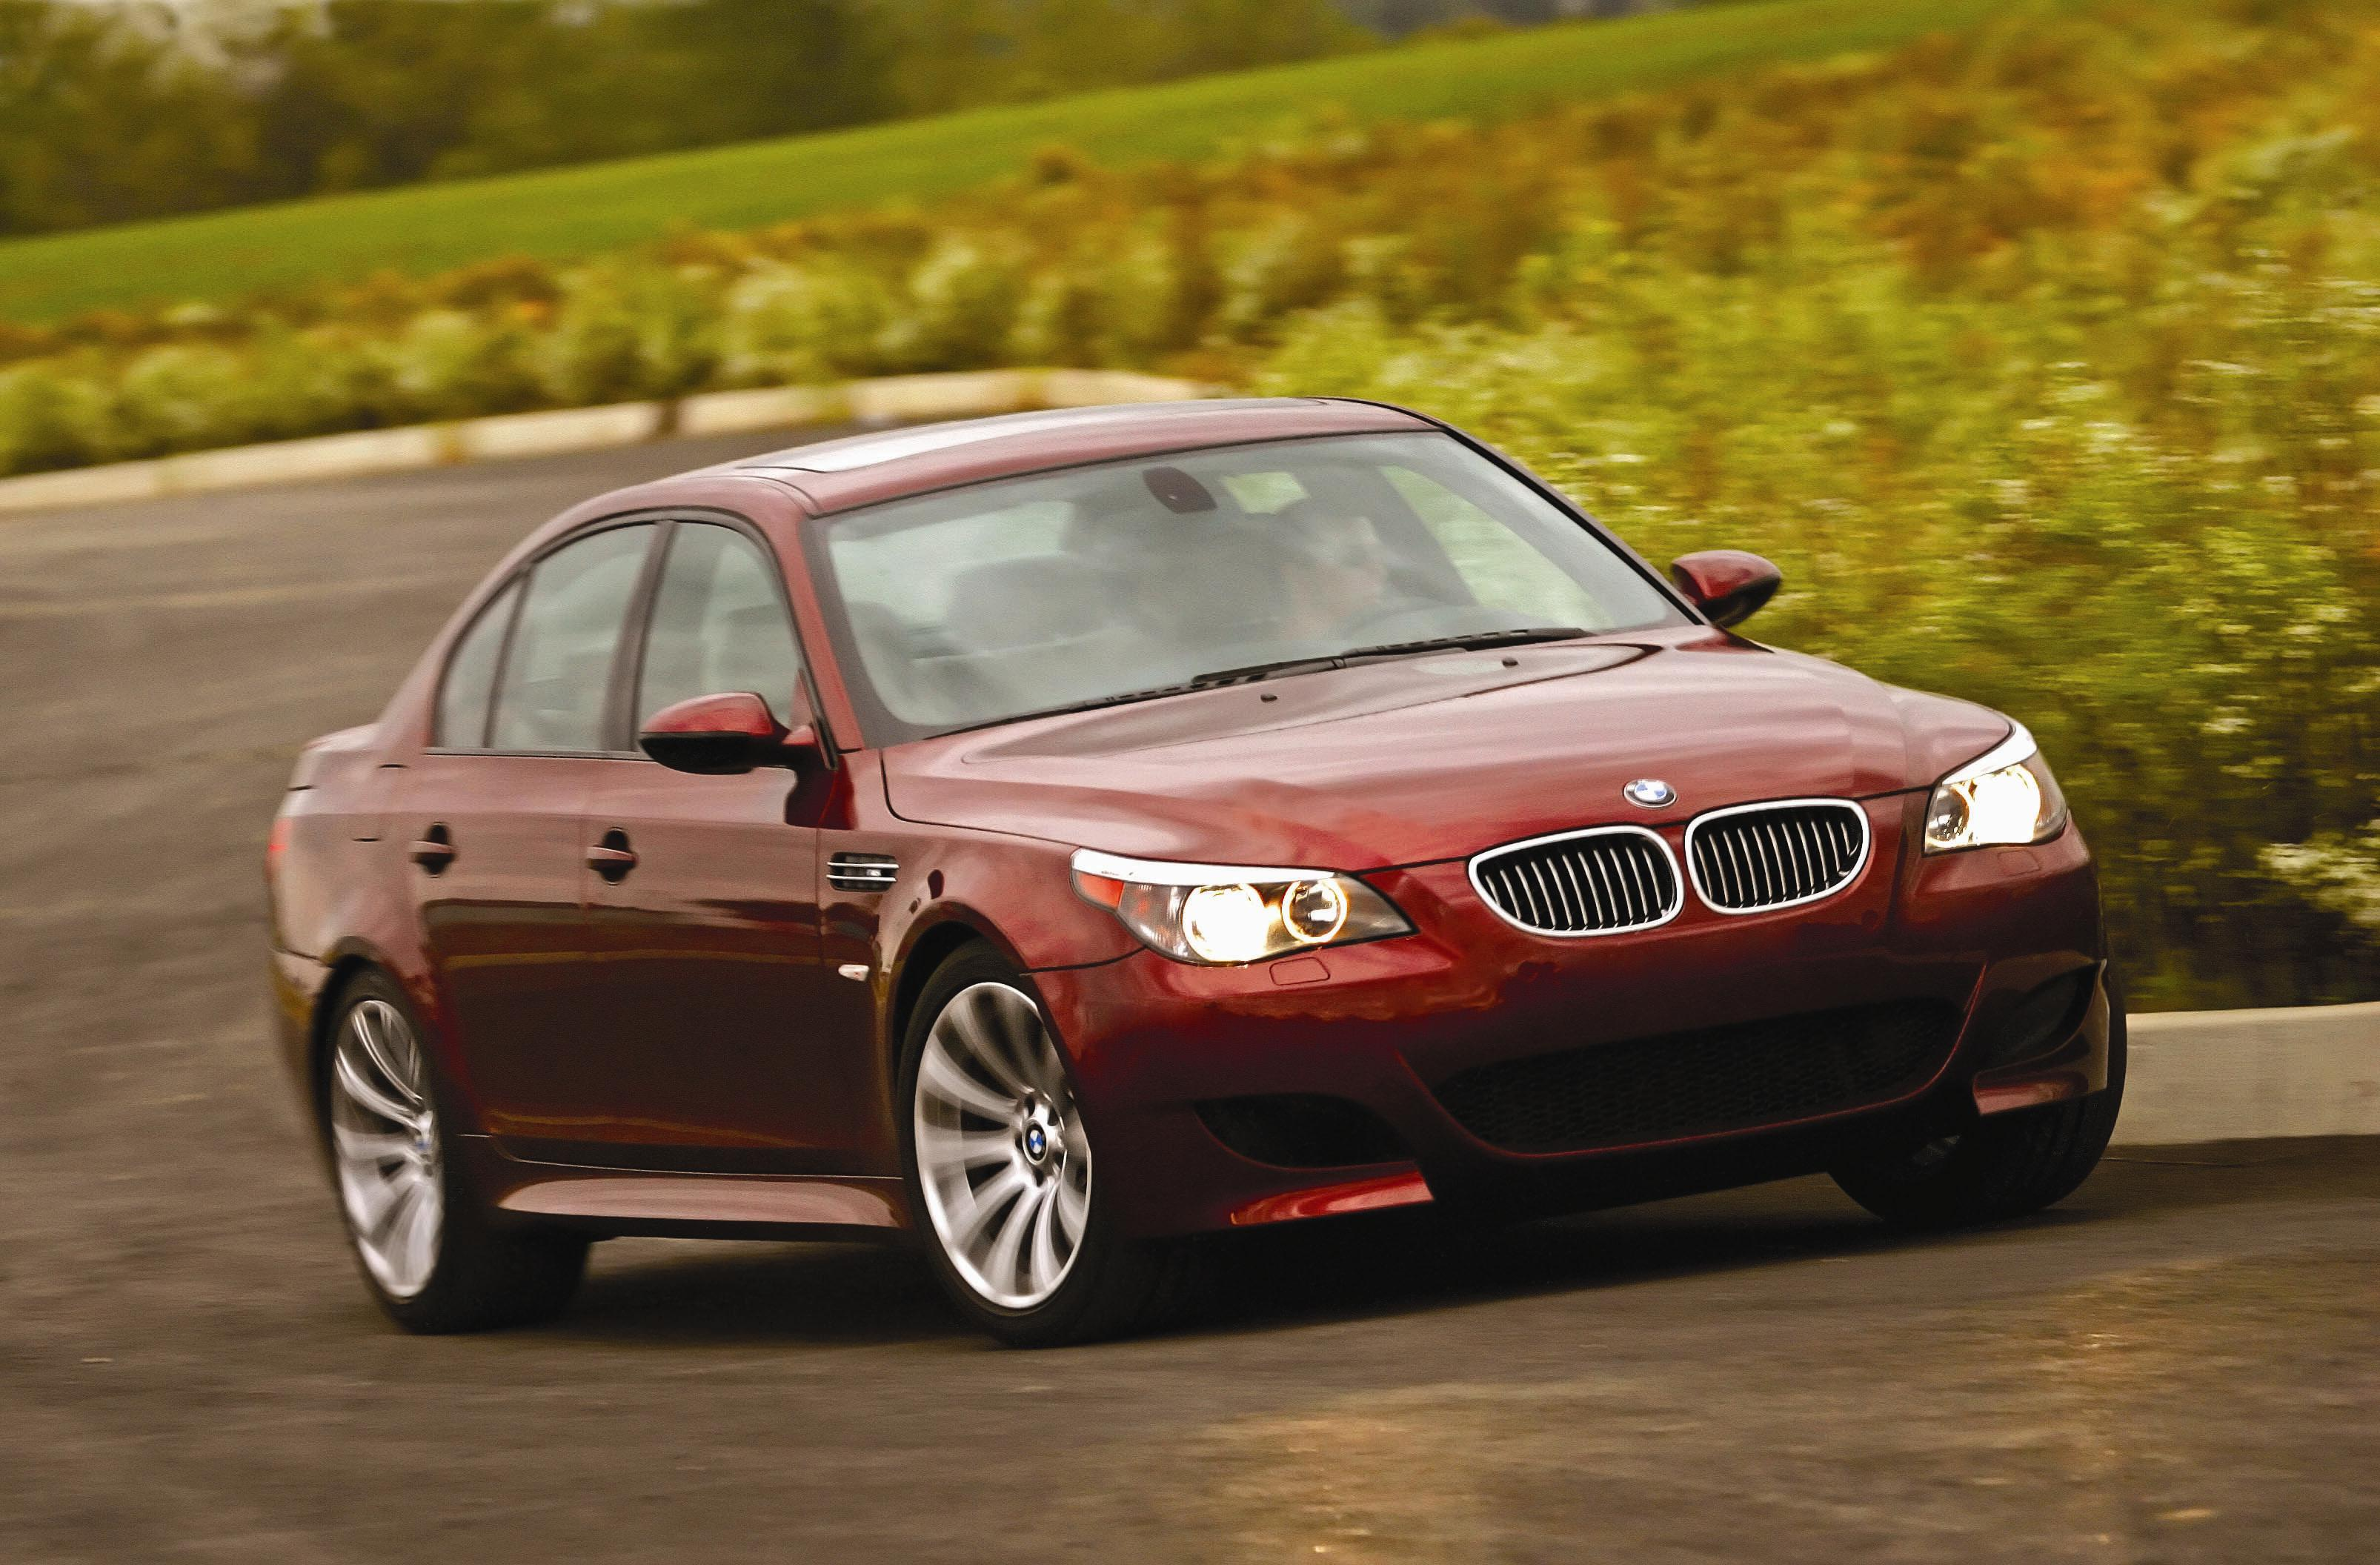 2007 BMW M5 Review - Top Speed